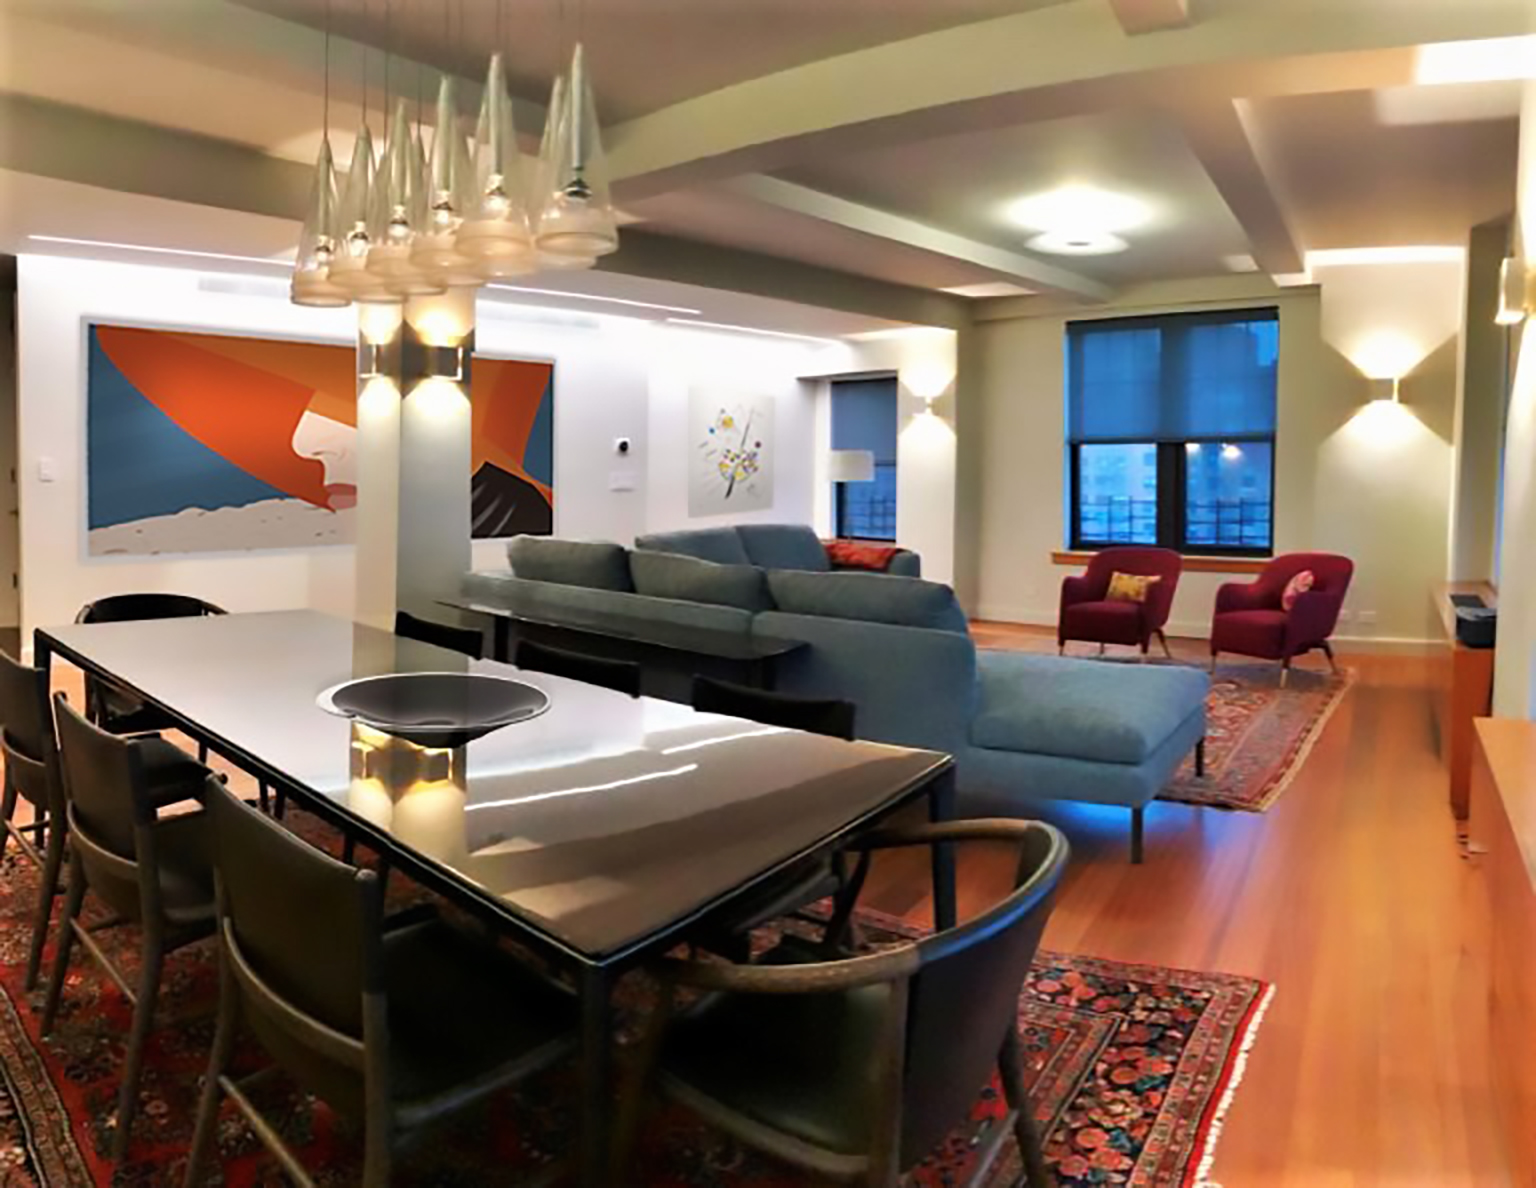 Modular-Architectural-Lighting-in-Residential-Gut-Rehab-by-Interior-Designer-Kevin-Gray